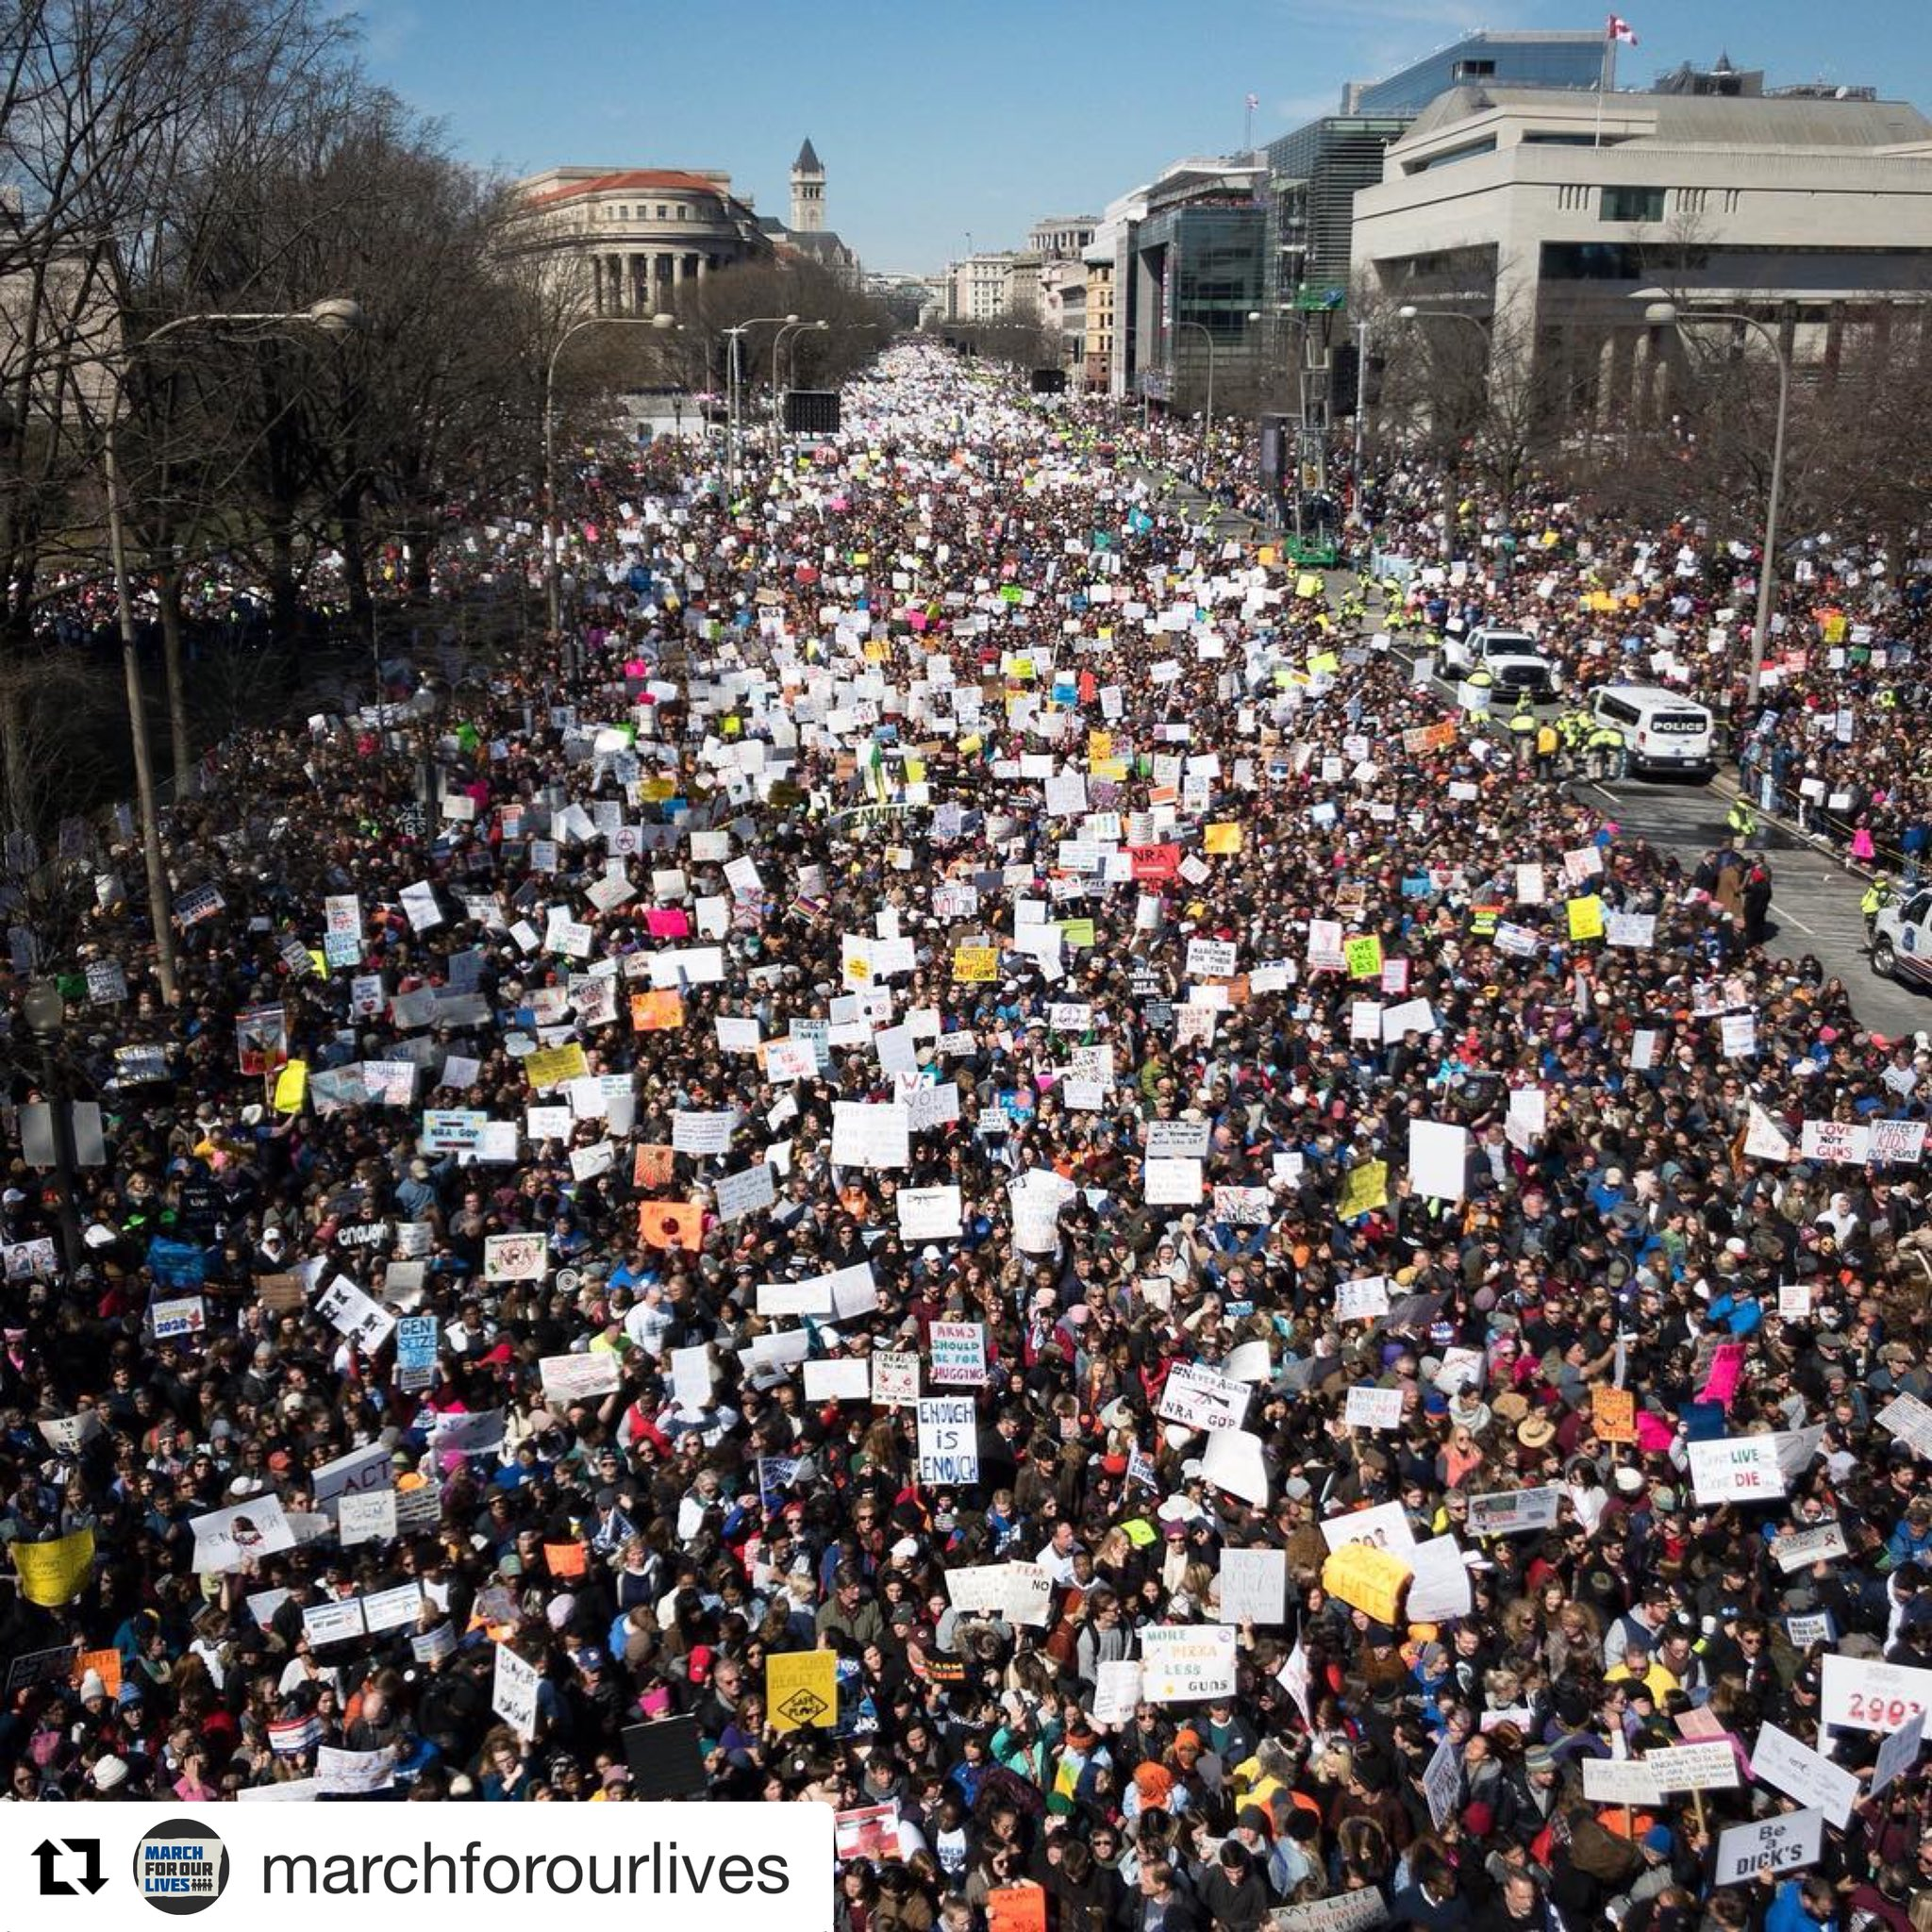 Humbled and proud of this generation taking the lead. Their time is now. #MarchForOurLives https://t.co/6WpG7AxMKK